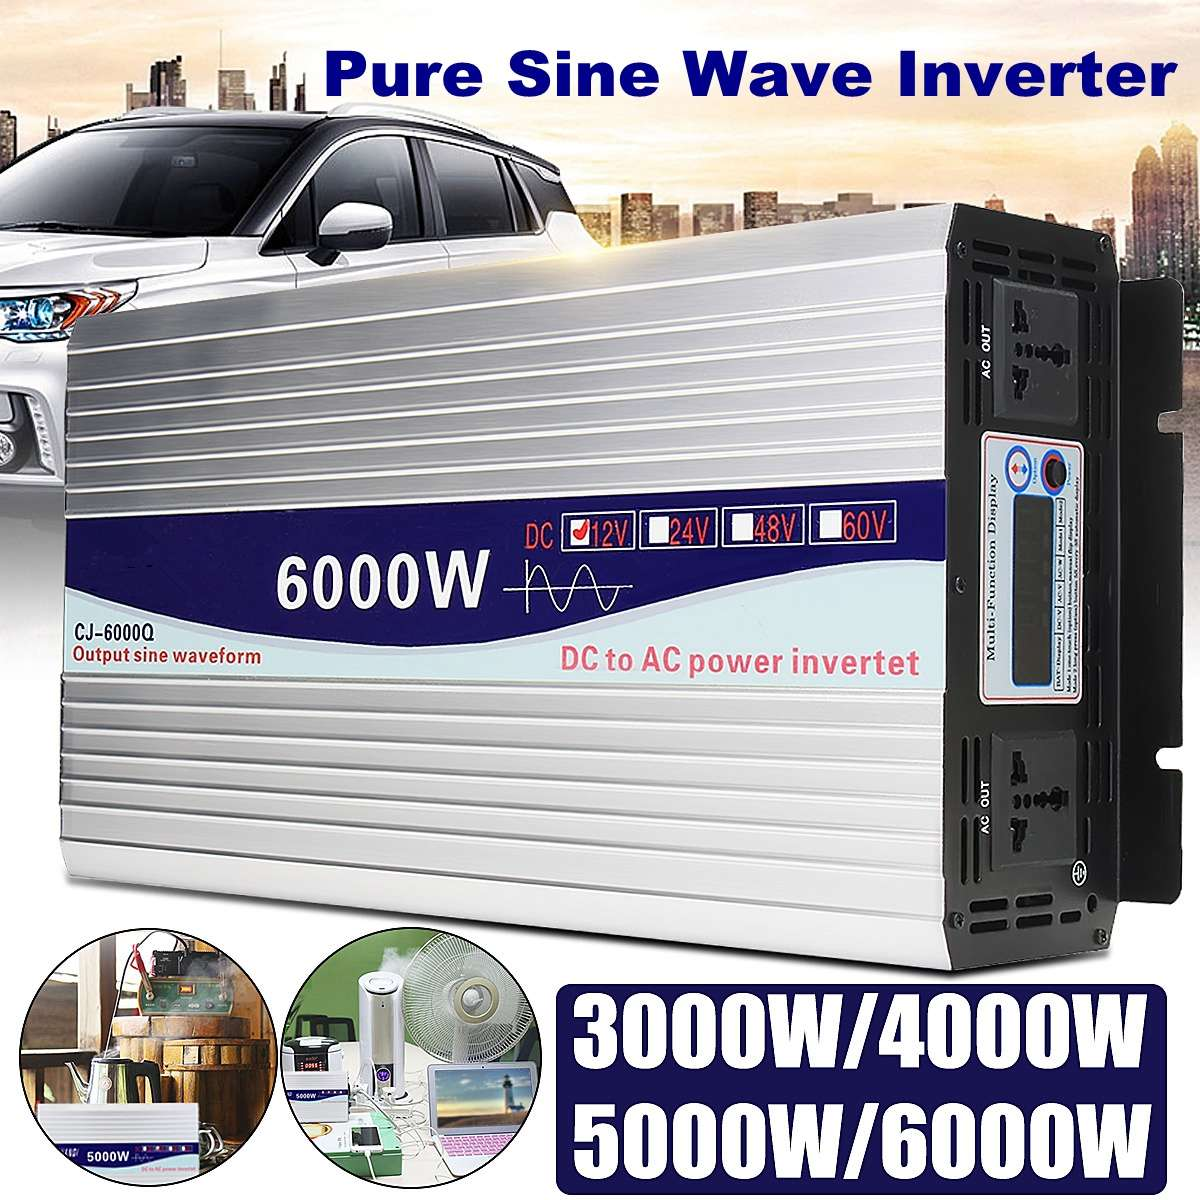 NEW Inverter 12V/24V to AC 220V 3000/4000/5000/6000W Voltage transformer Pure Sine Wave Power Inverter Converter LED DisplayNEW Inverter 12V/24V to AC 220V 3000/4000/5000/6000W Voltage transformer Pure Sine Wave Power Inverter Converter LED Display